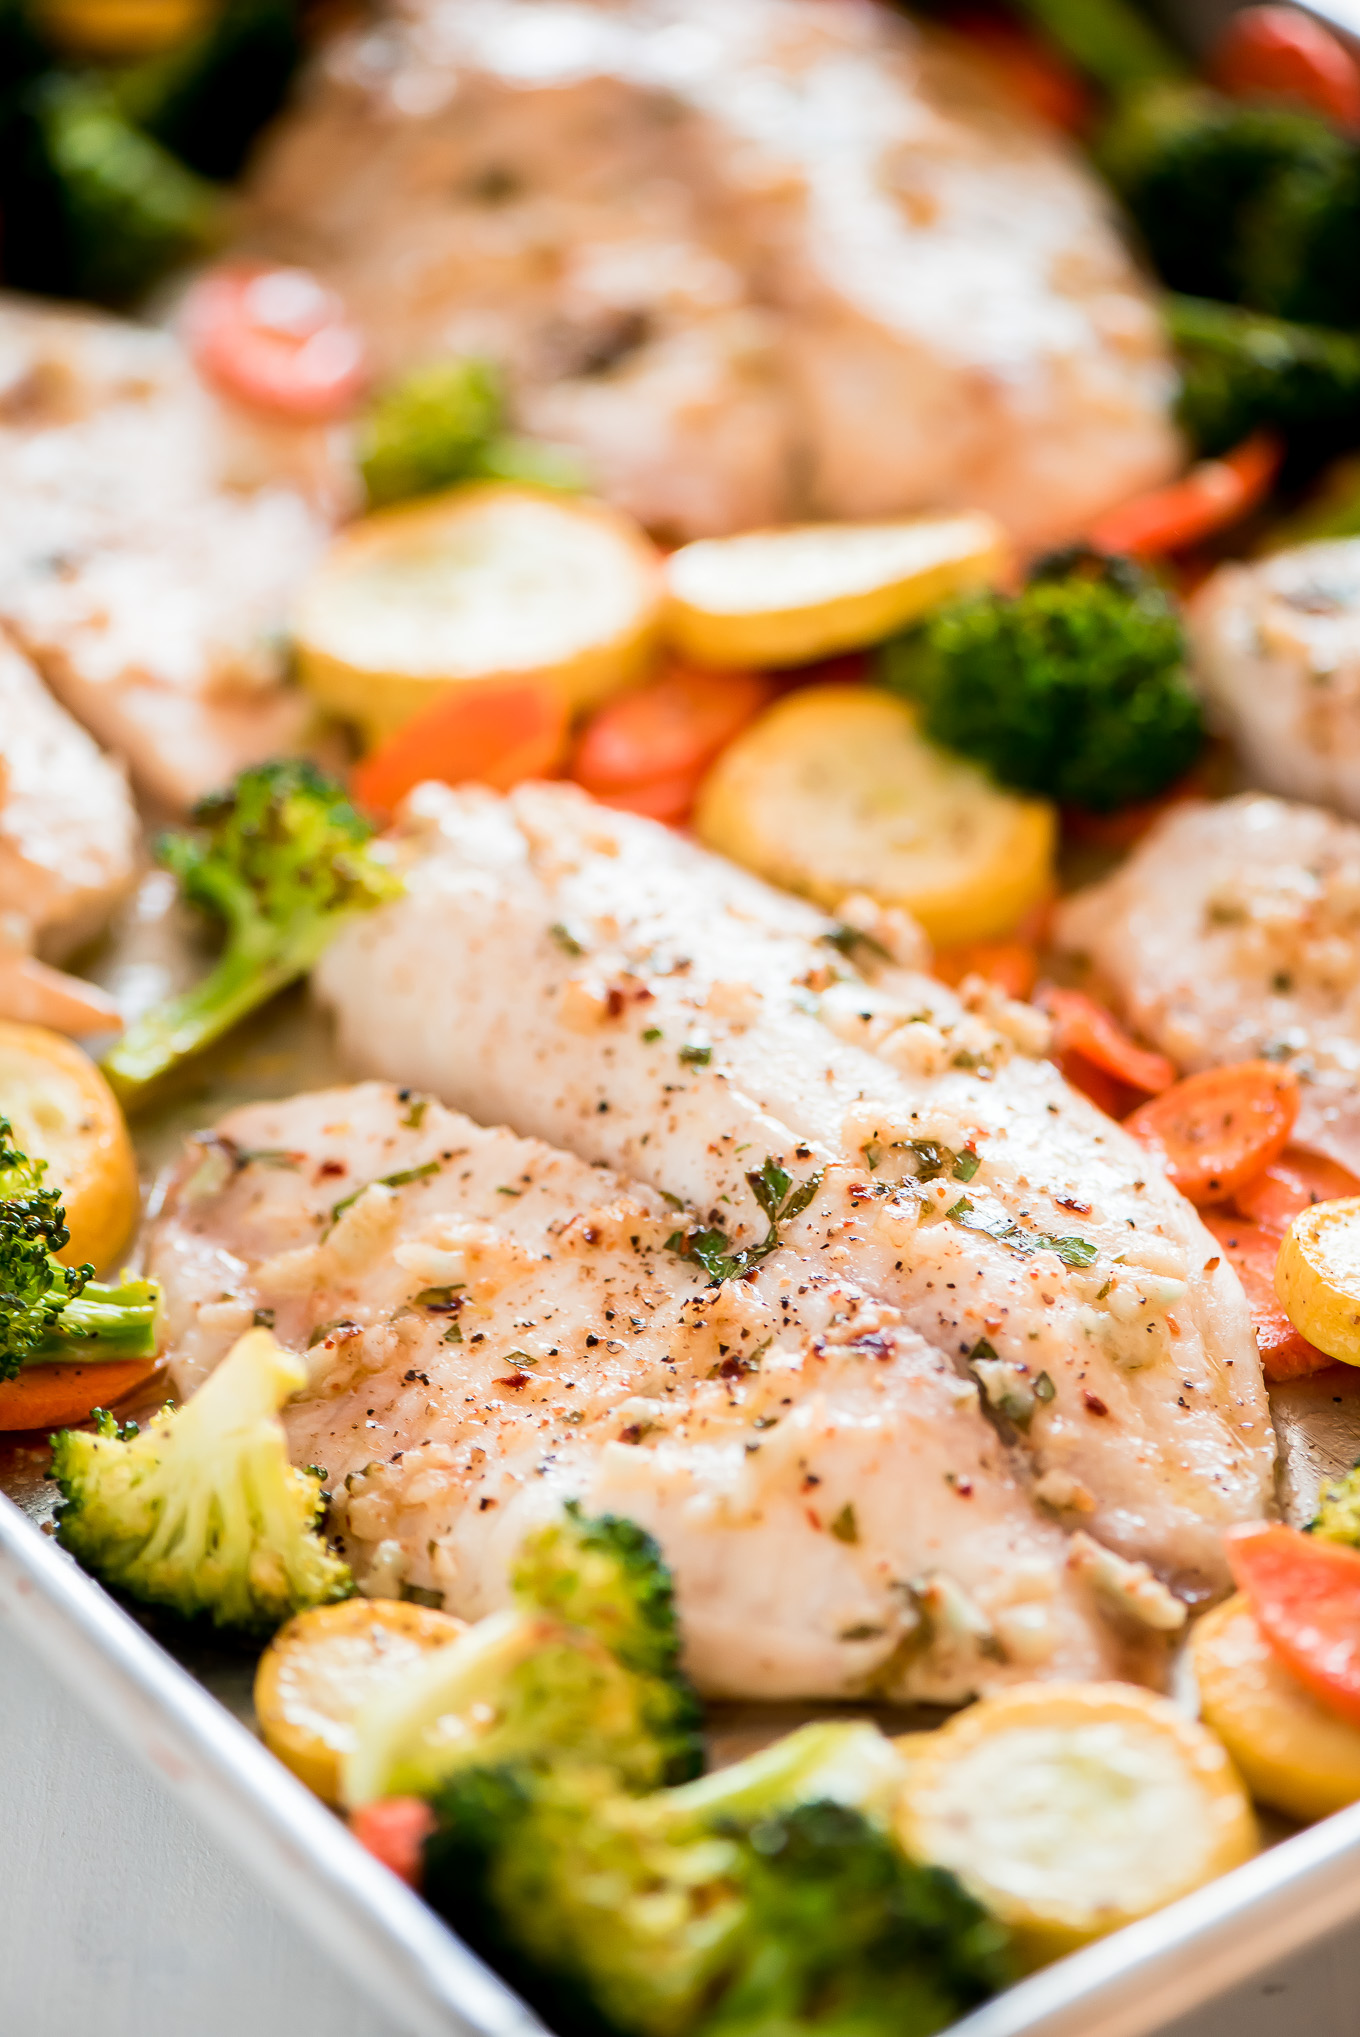 Sheet Pan Baked Tilapia and Roasted Vegetables Garnish and Glaze